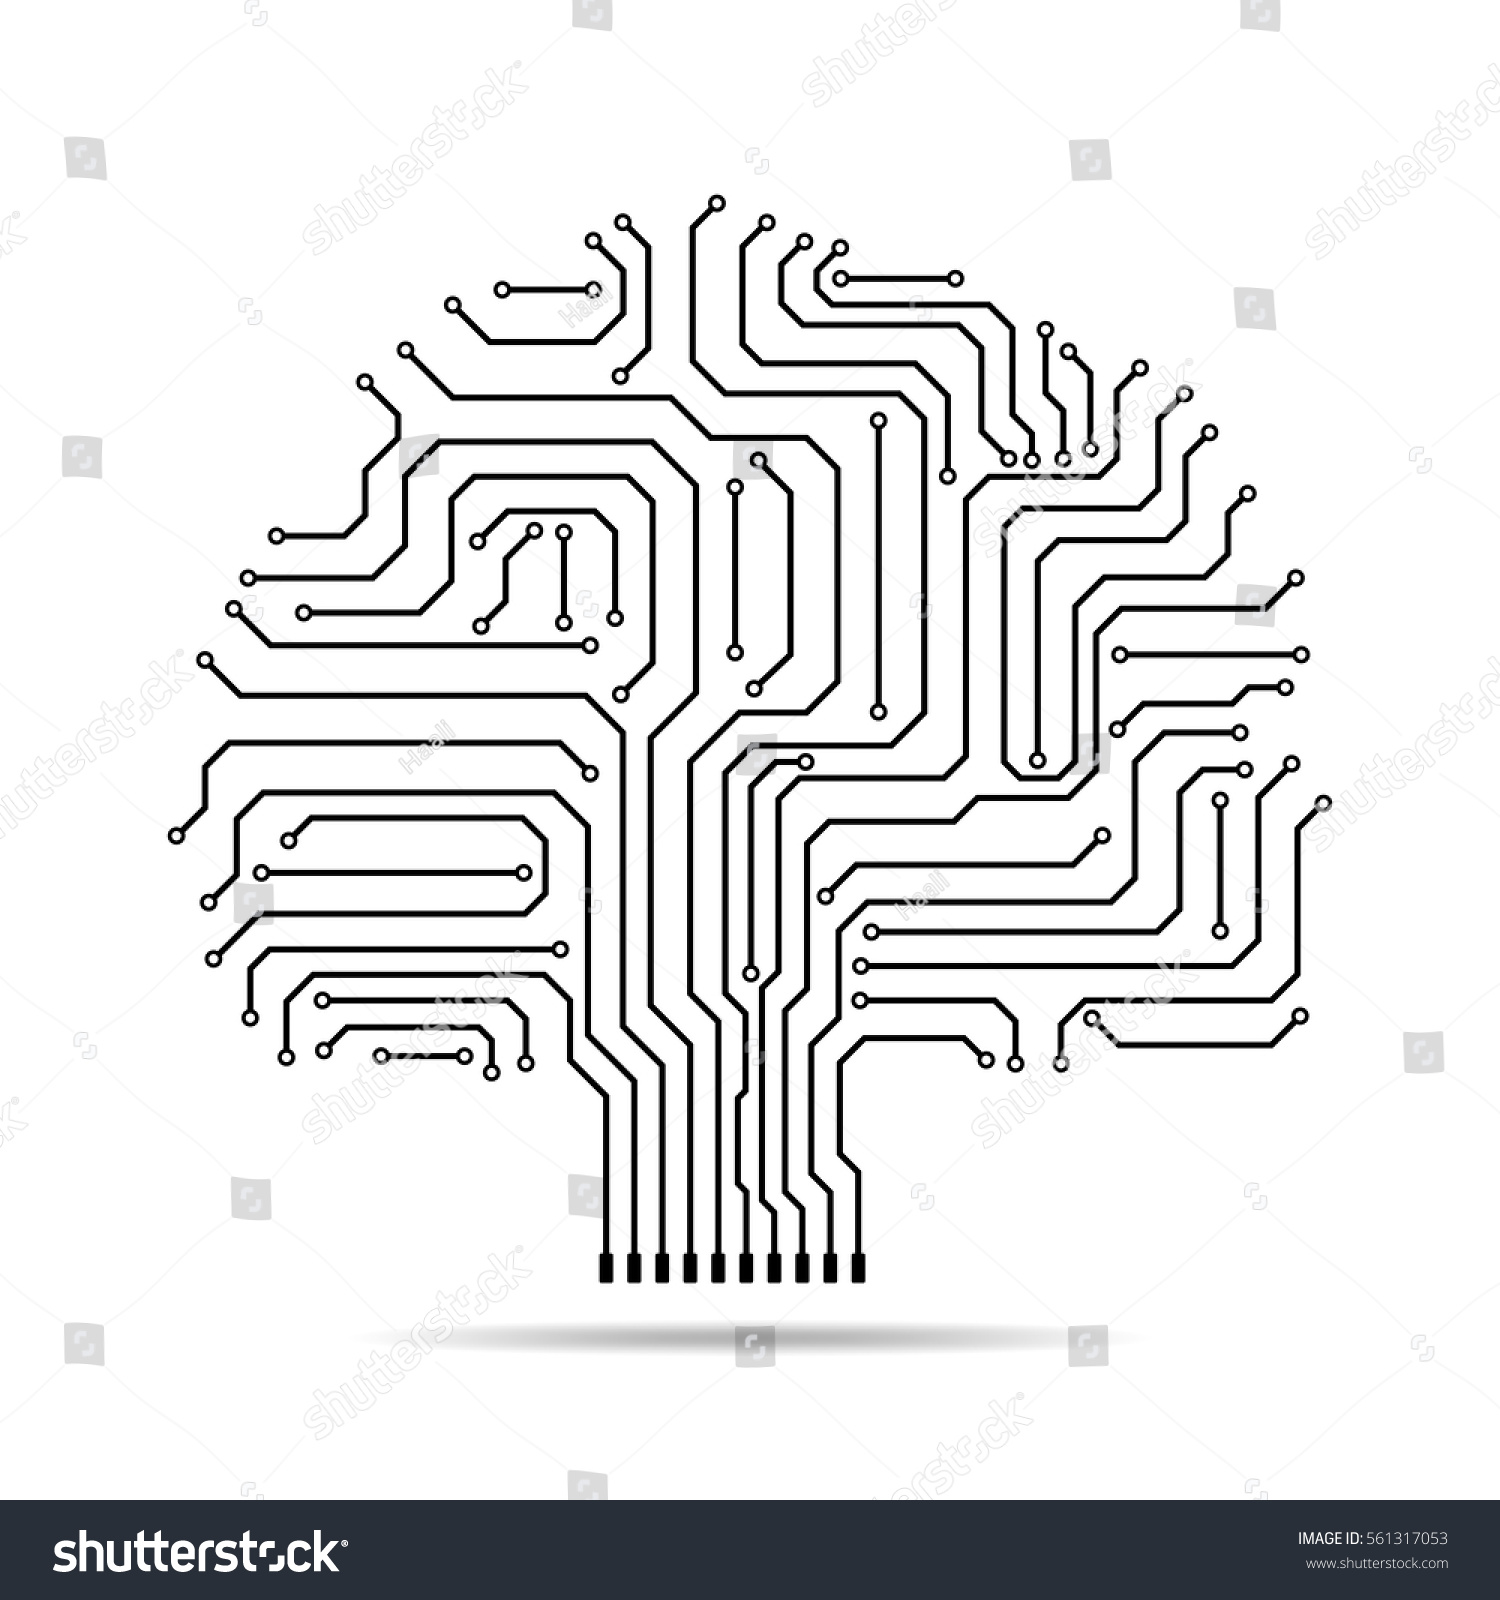 Circuit Board Tree Icon Abstract Line Stock Vector Royalty Free Designing A And Getting It Made Silhouette Isolated Illustration Crown Of